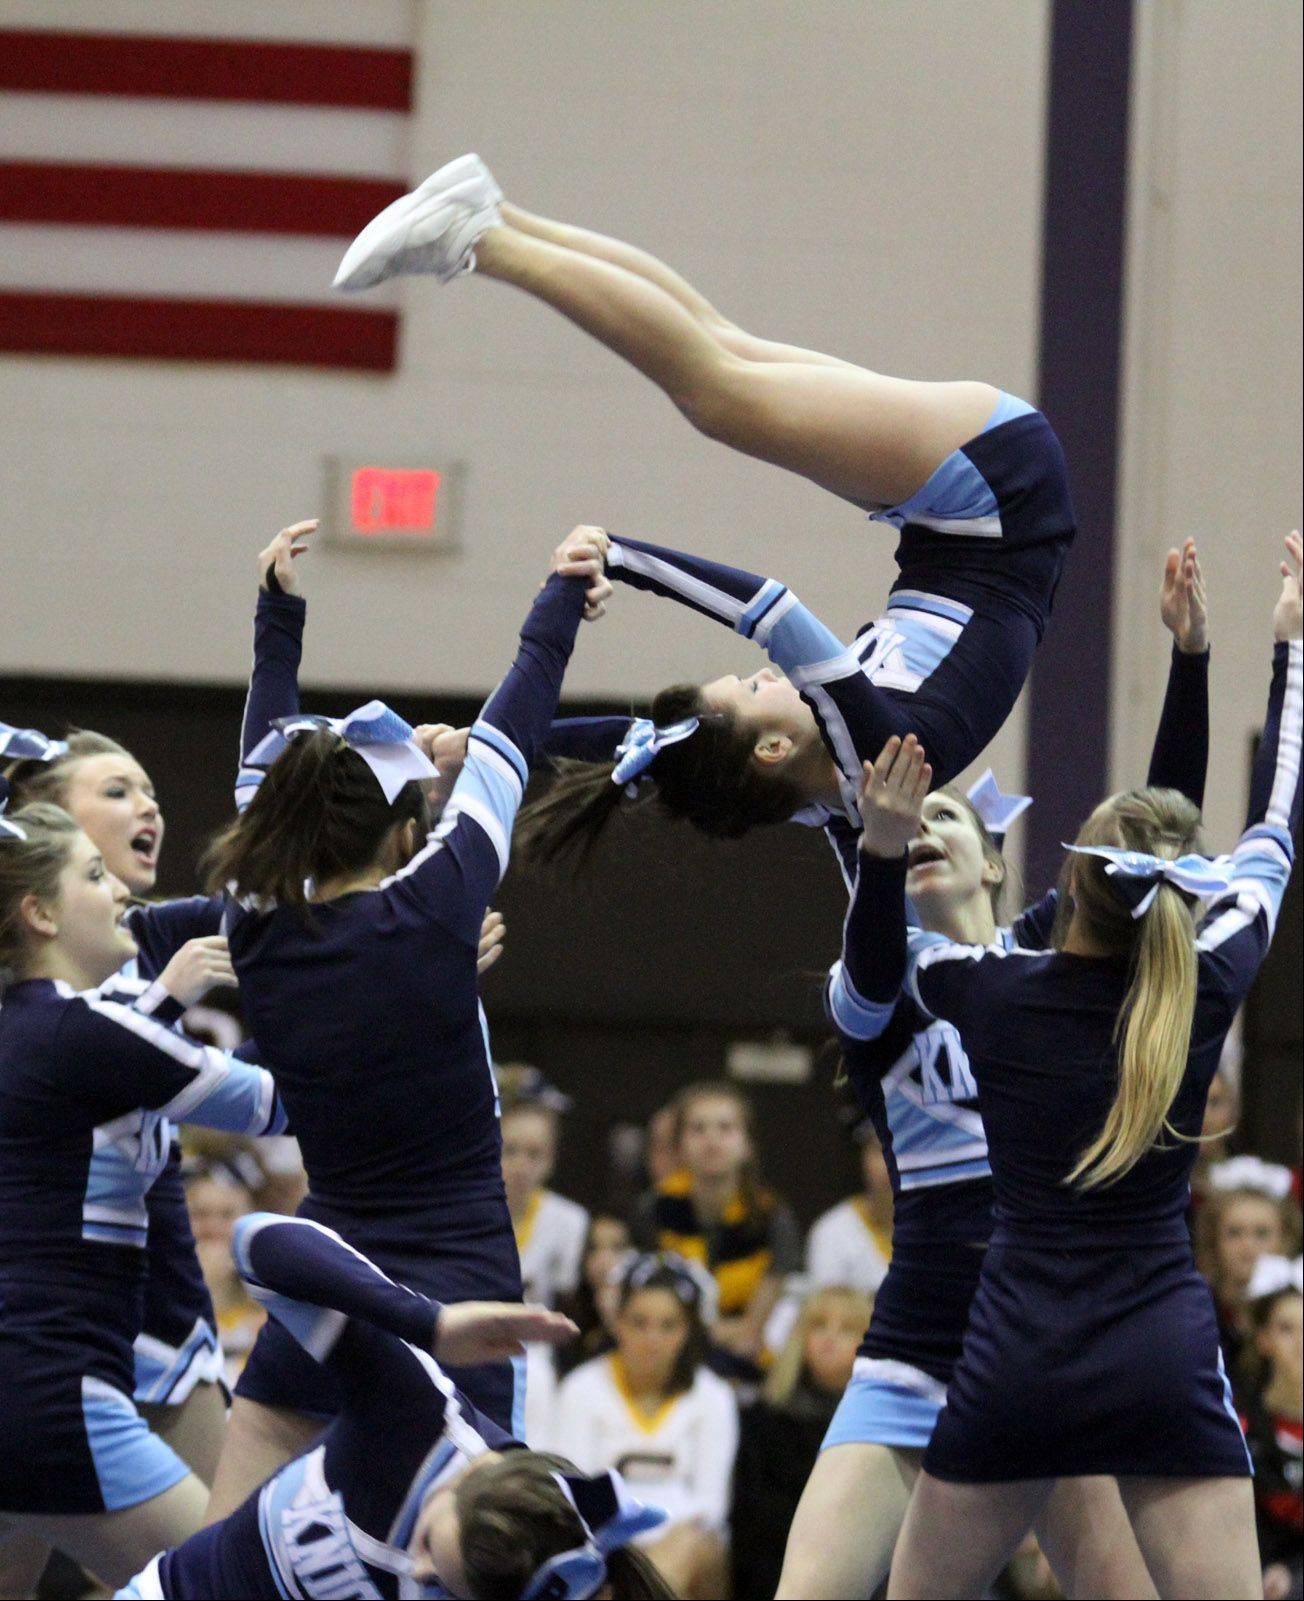 The Prospect High School cheerleading team performed at the IHSA competitive cheerleading sectionals held Saturday at Rolling Meadows High School.